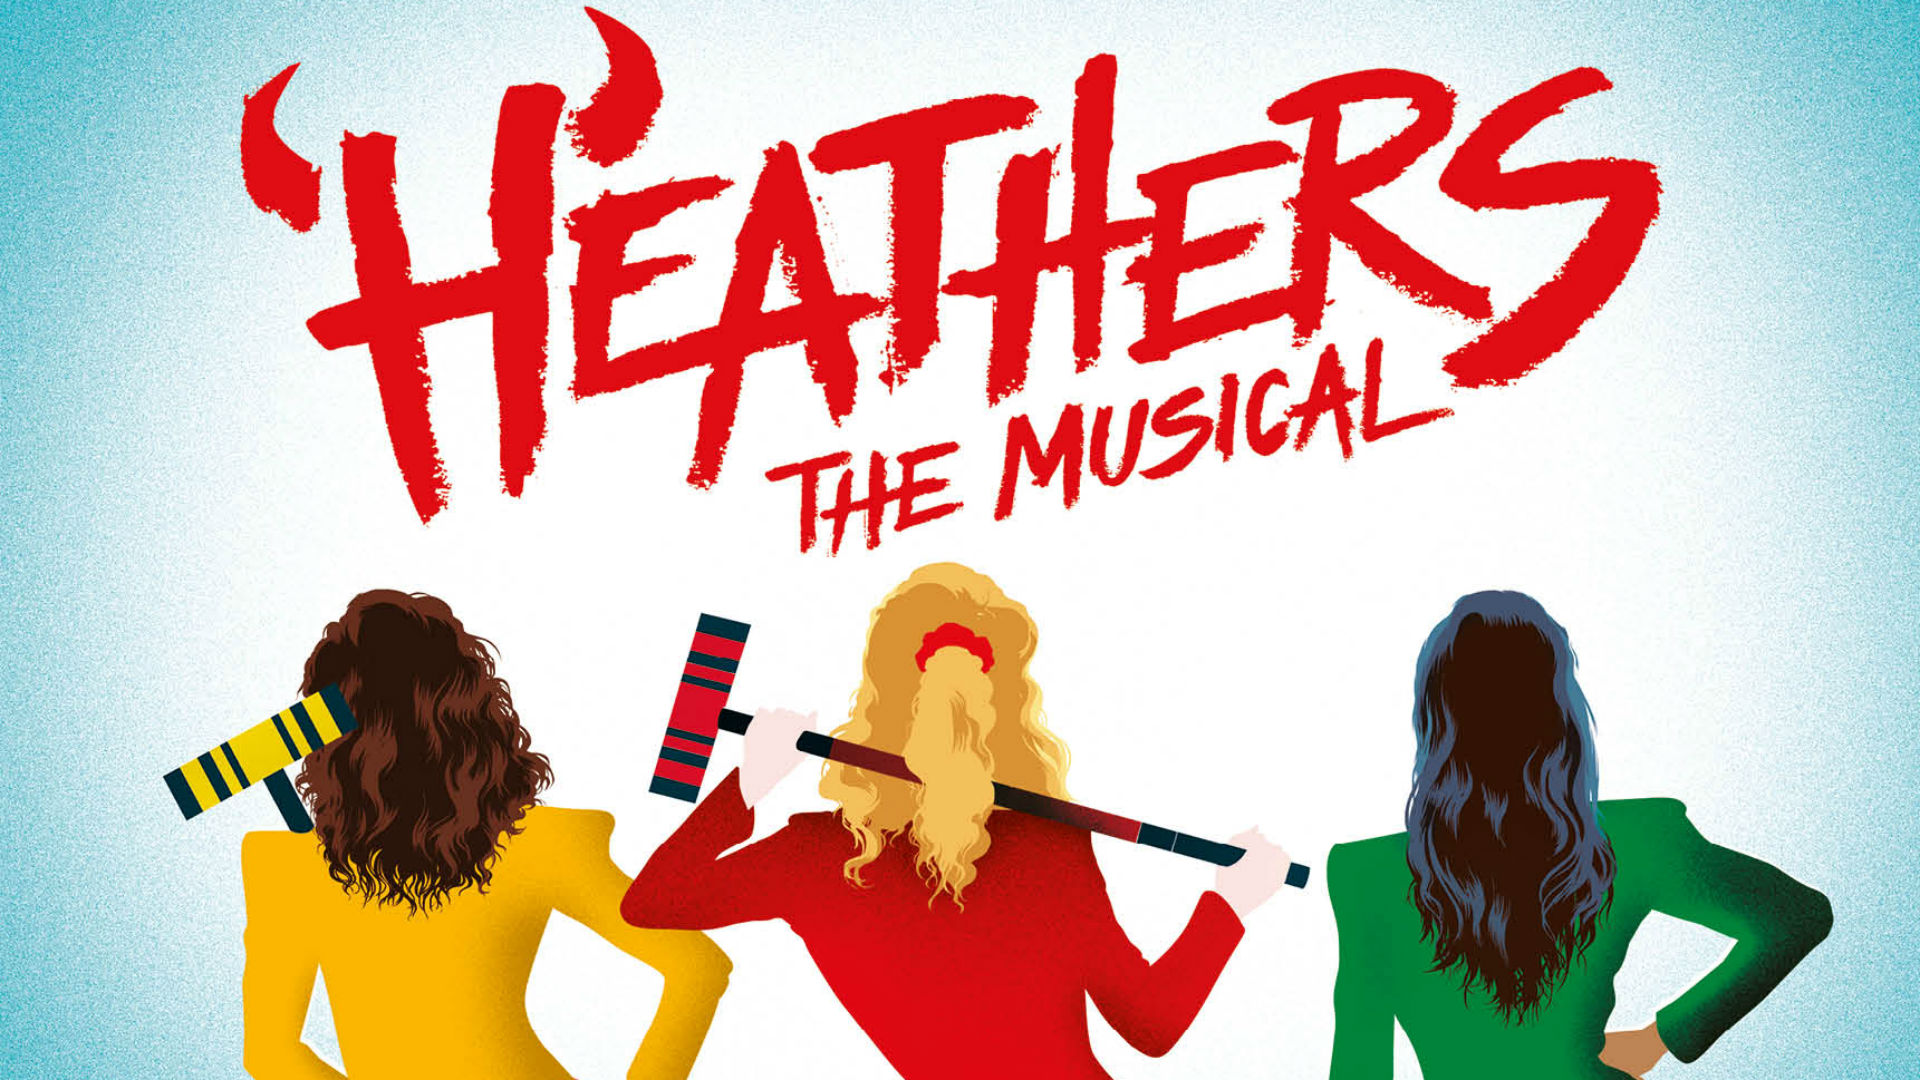 Heathers The Musical, written in red, above the back view of three women wearing blazers and holding croquet mallets.